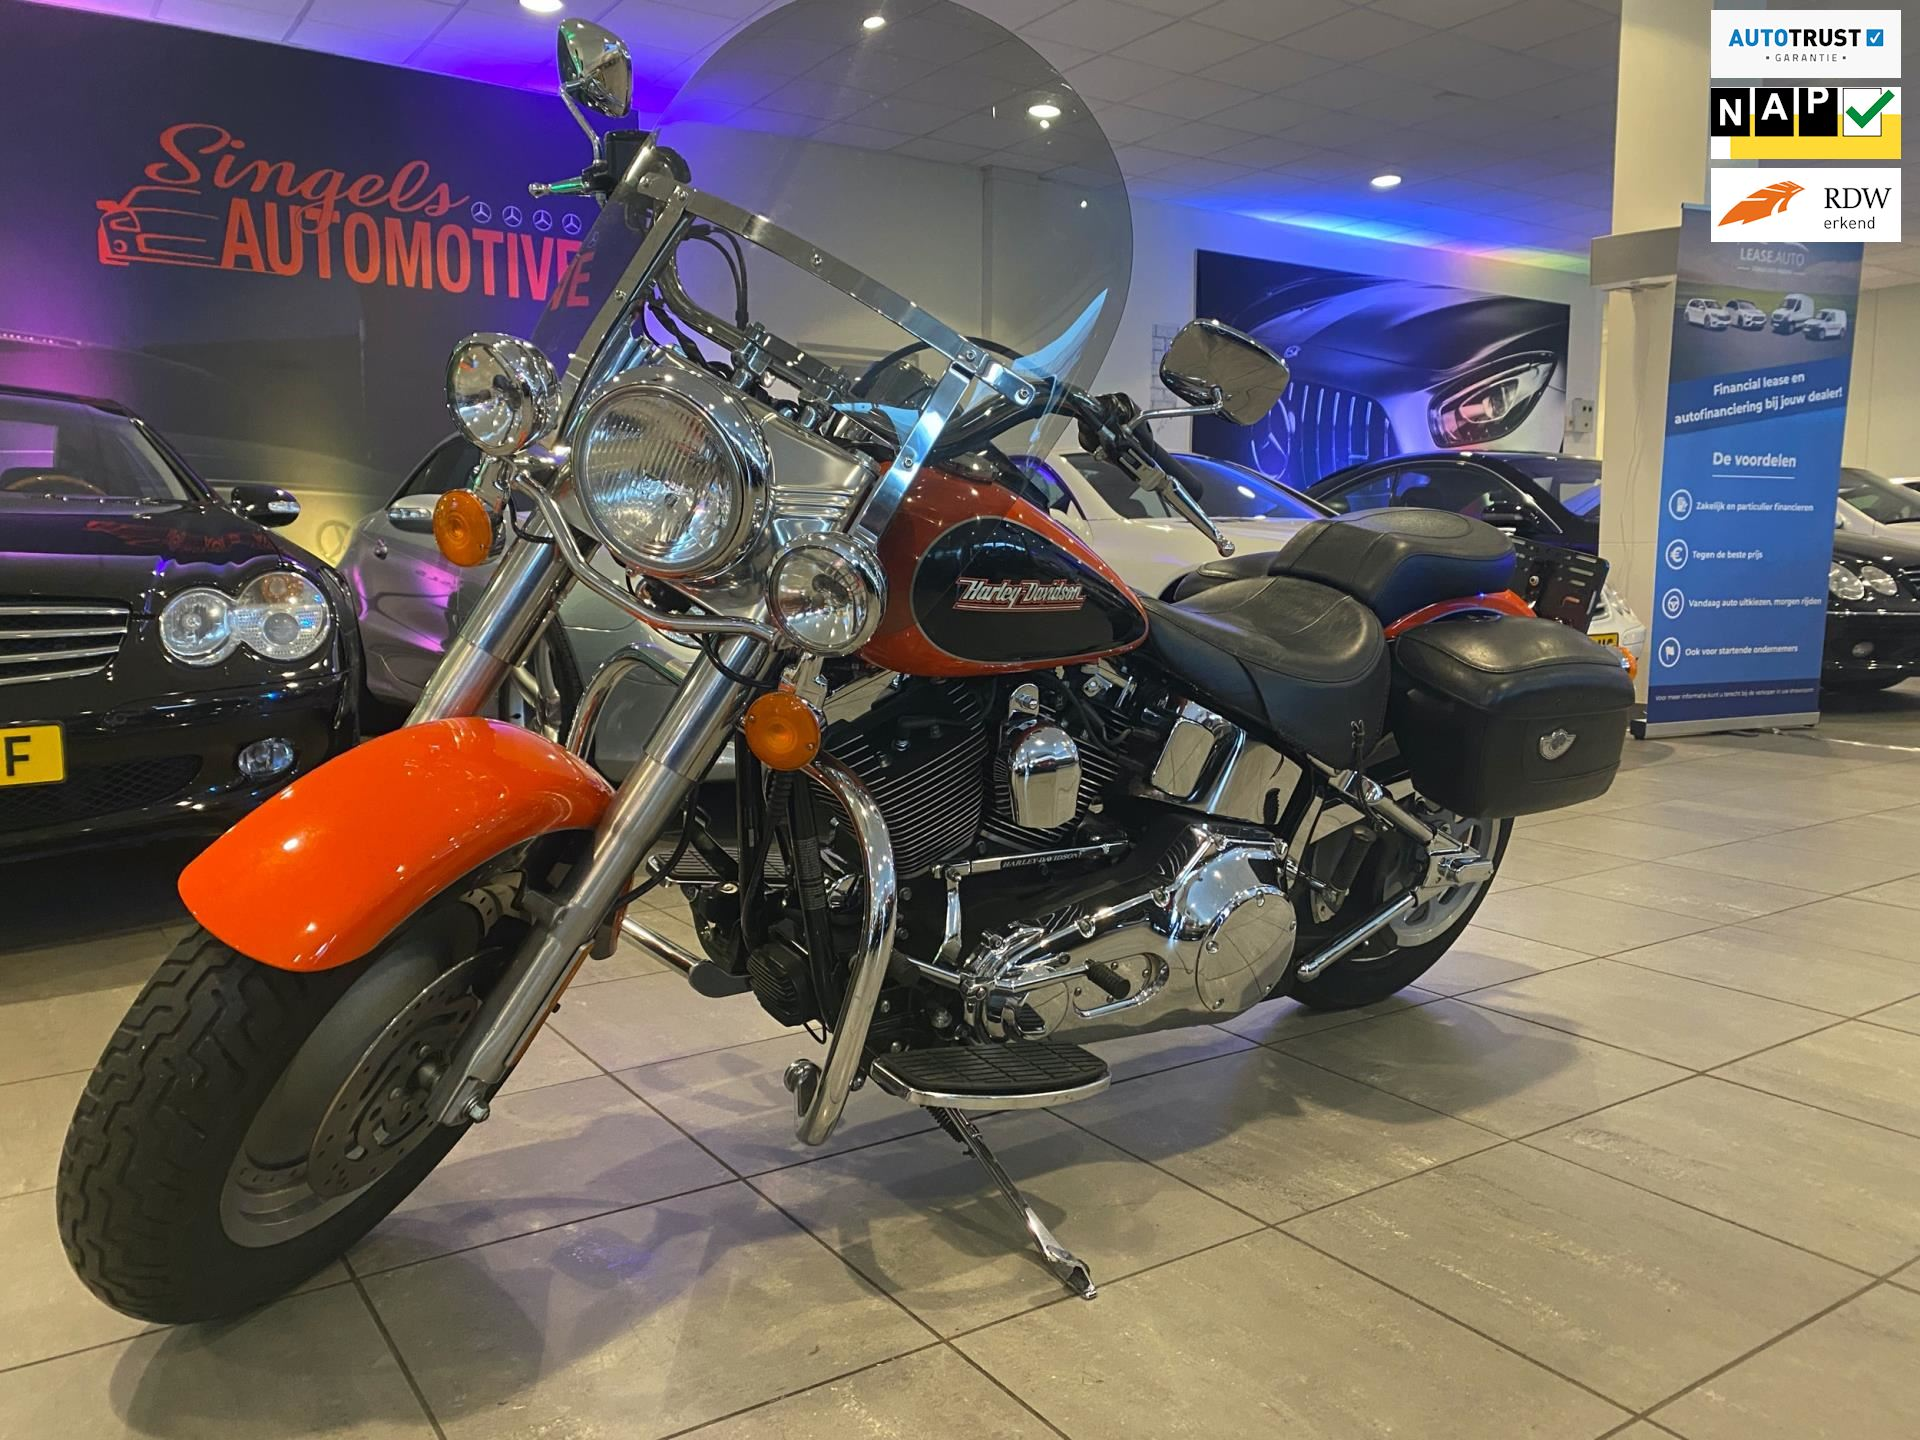 Harley Davidson Chopper occasion - SINGELS AUTOMOTIVE